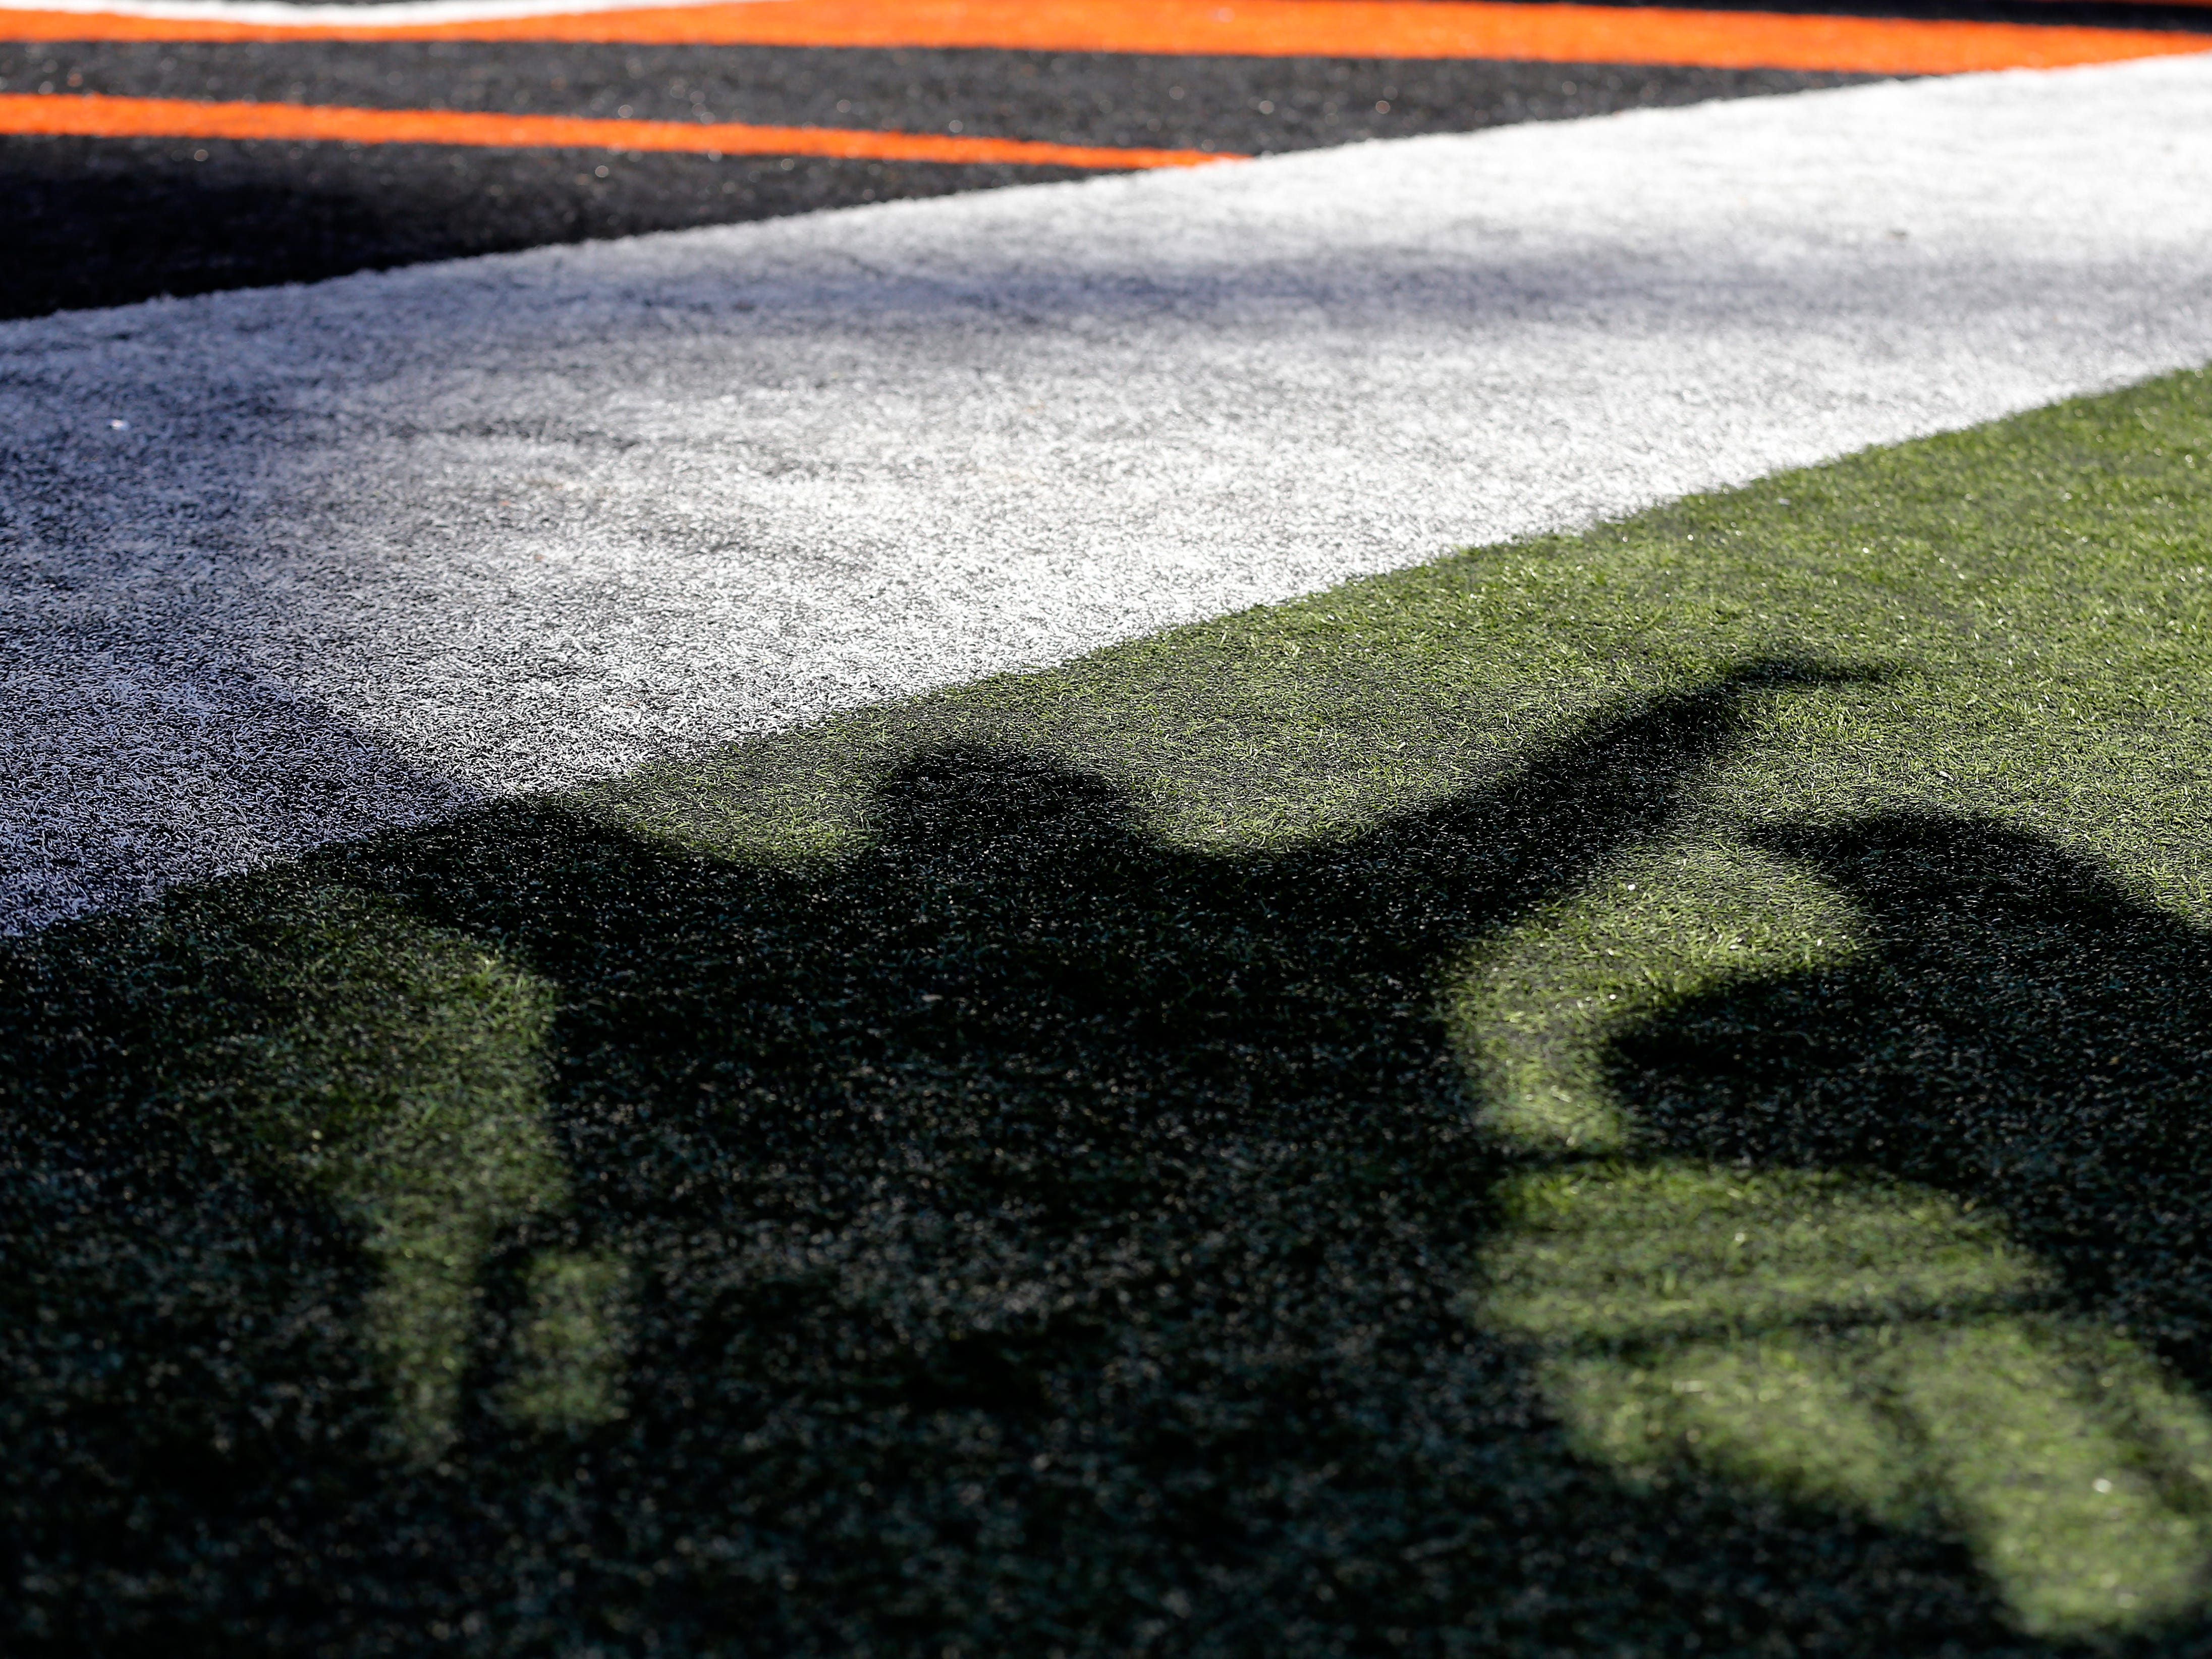 A Cincinnati Bengals fan waves off a Saints touchdown as the play is reviewed in the first quarter of the NFL Week 10 game between the Cincinnati Bengals and the New Orleans Saints at Paul Brown Stadium in downtown Cincinnati on Sunday, Nov. 11, 2018. The Saints led 35-7 at halftime.